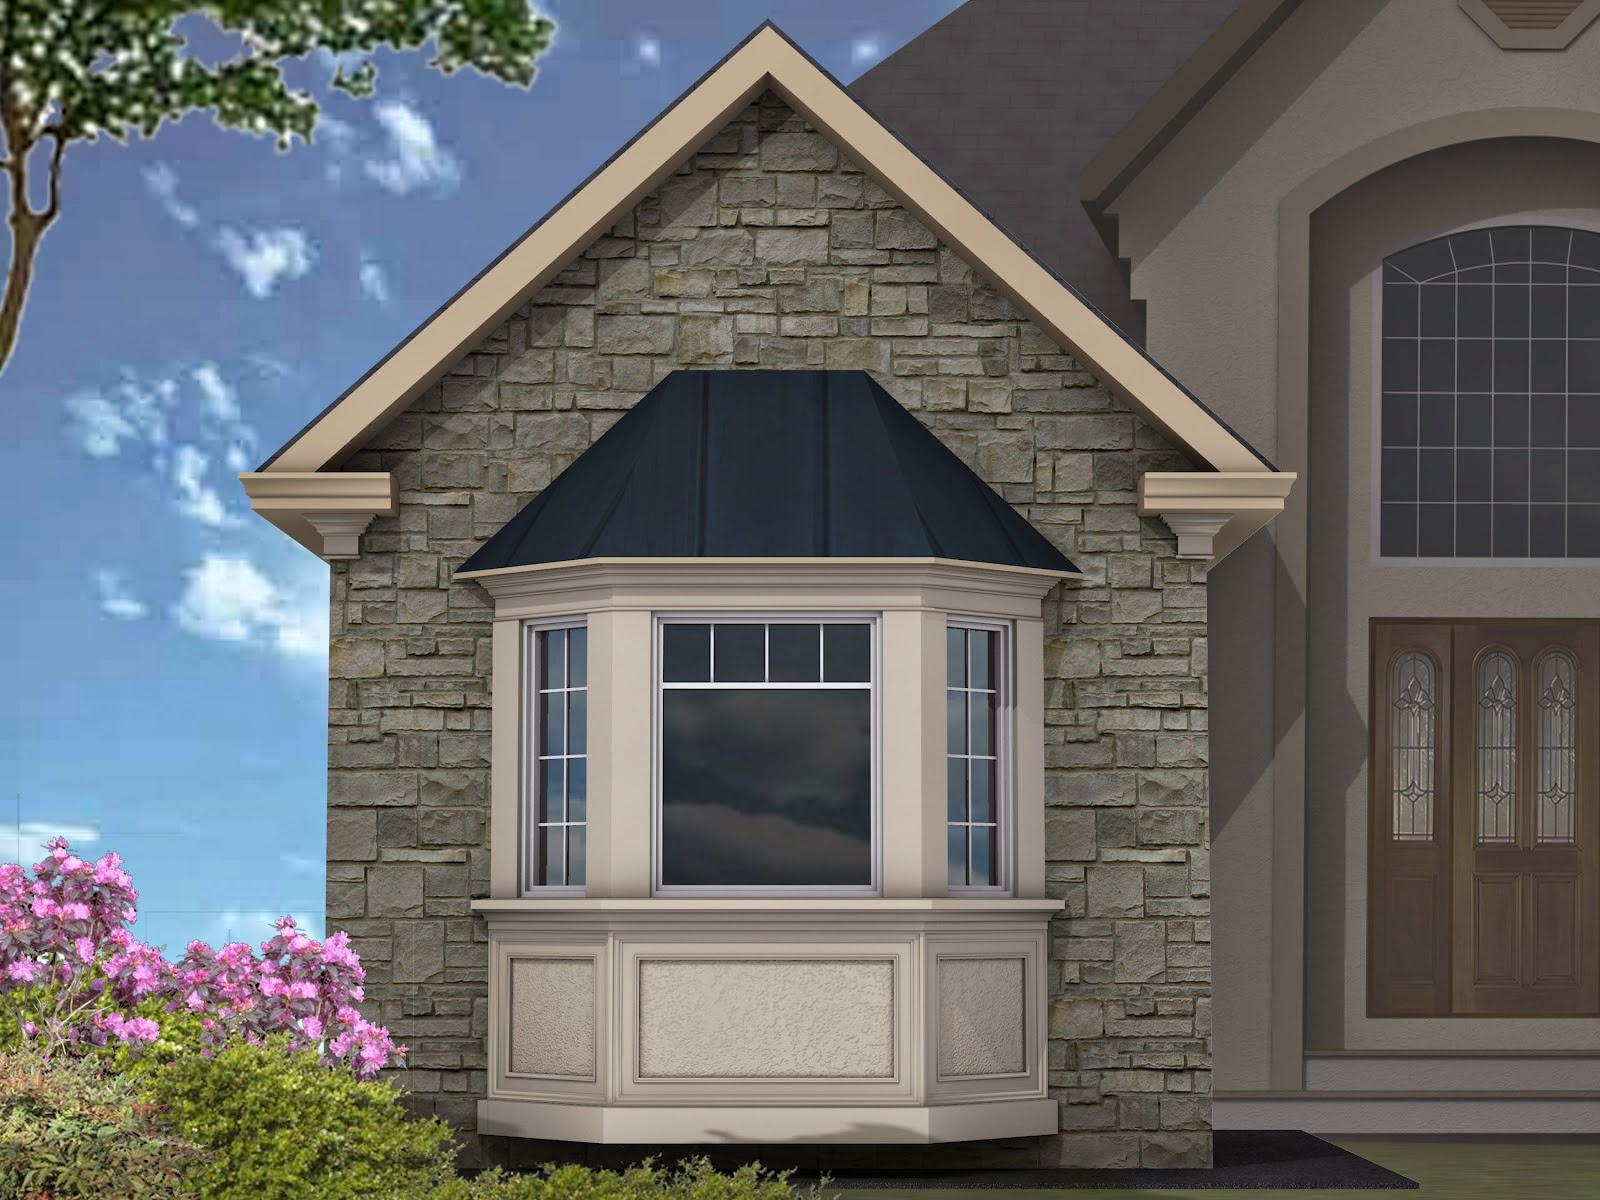 3d model of window exterior design home designs for Window design model